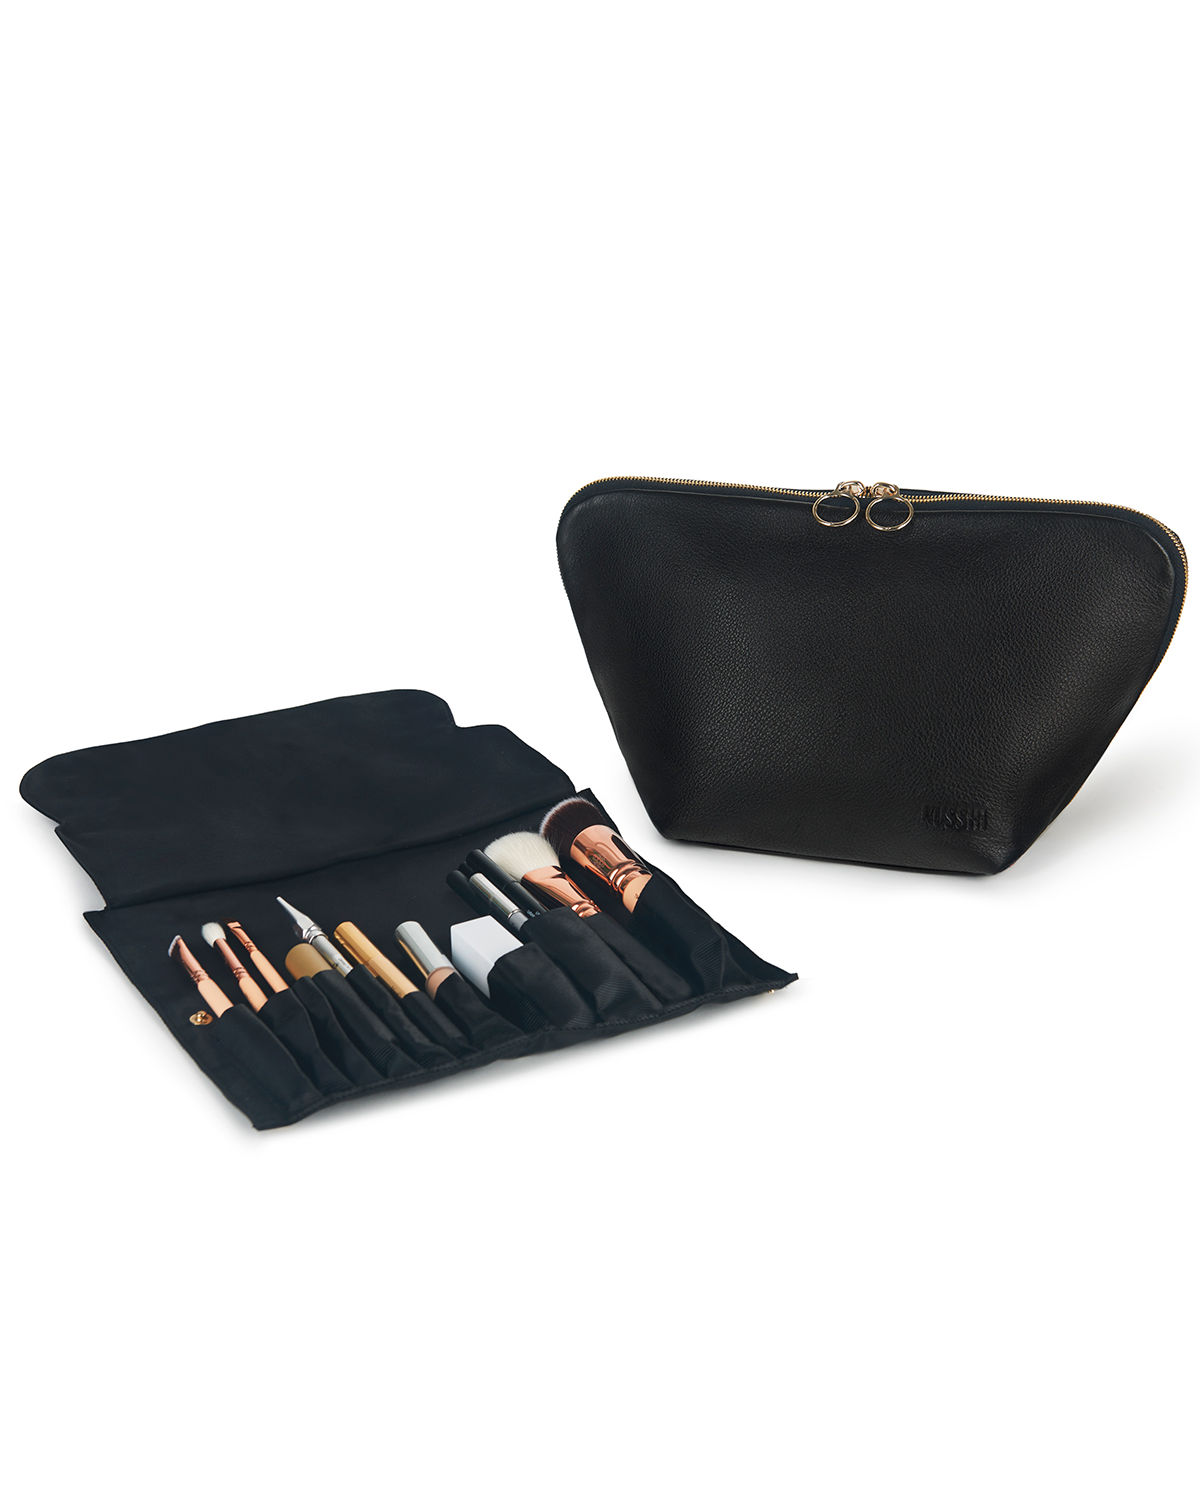 Vacationer Leather Makeup Bag w/ Organizer